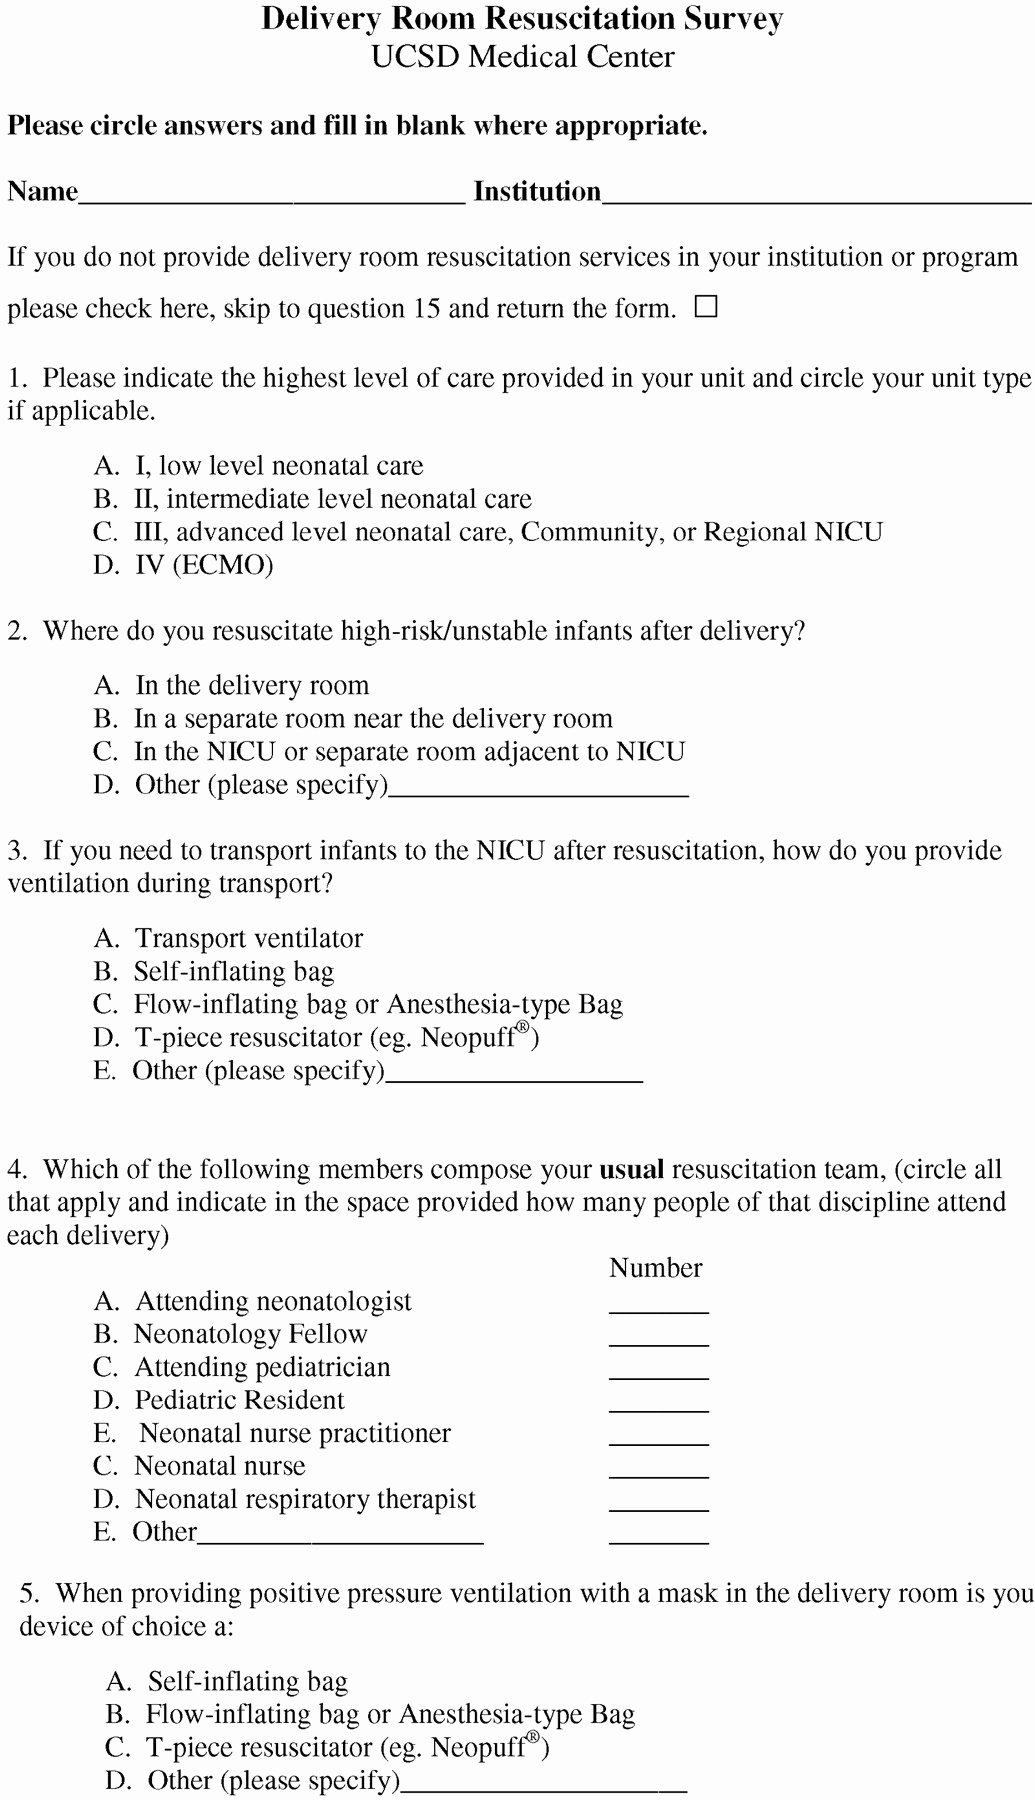 Emergency Room Discharge form Awesome A Survey Of Delivery Room Resuscitation Practices In the